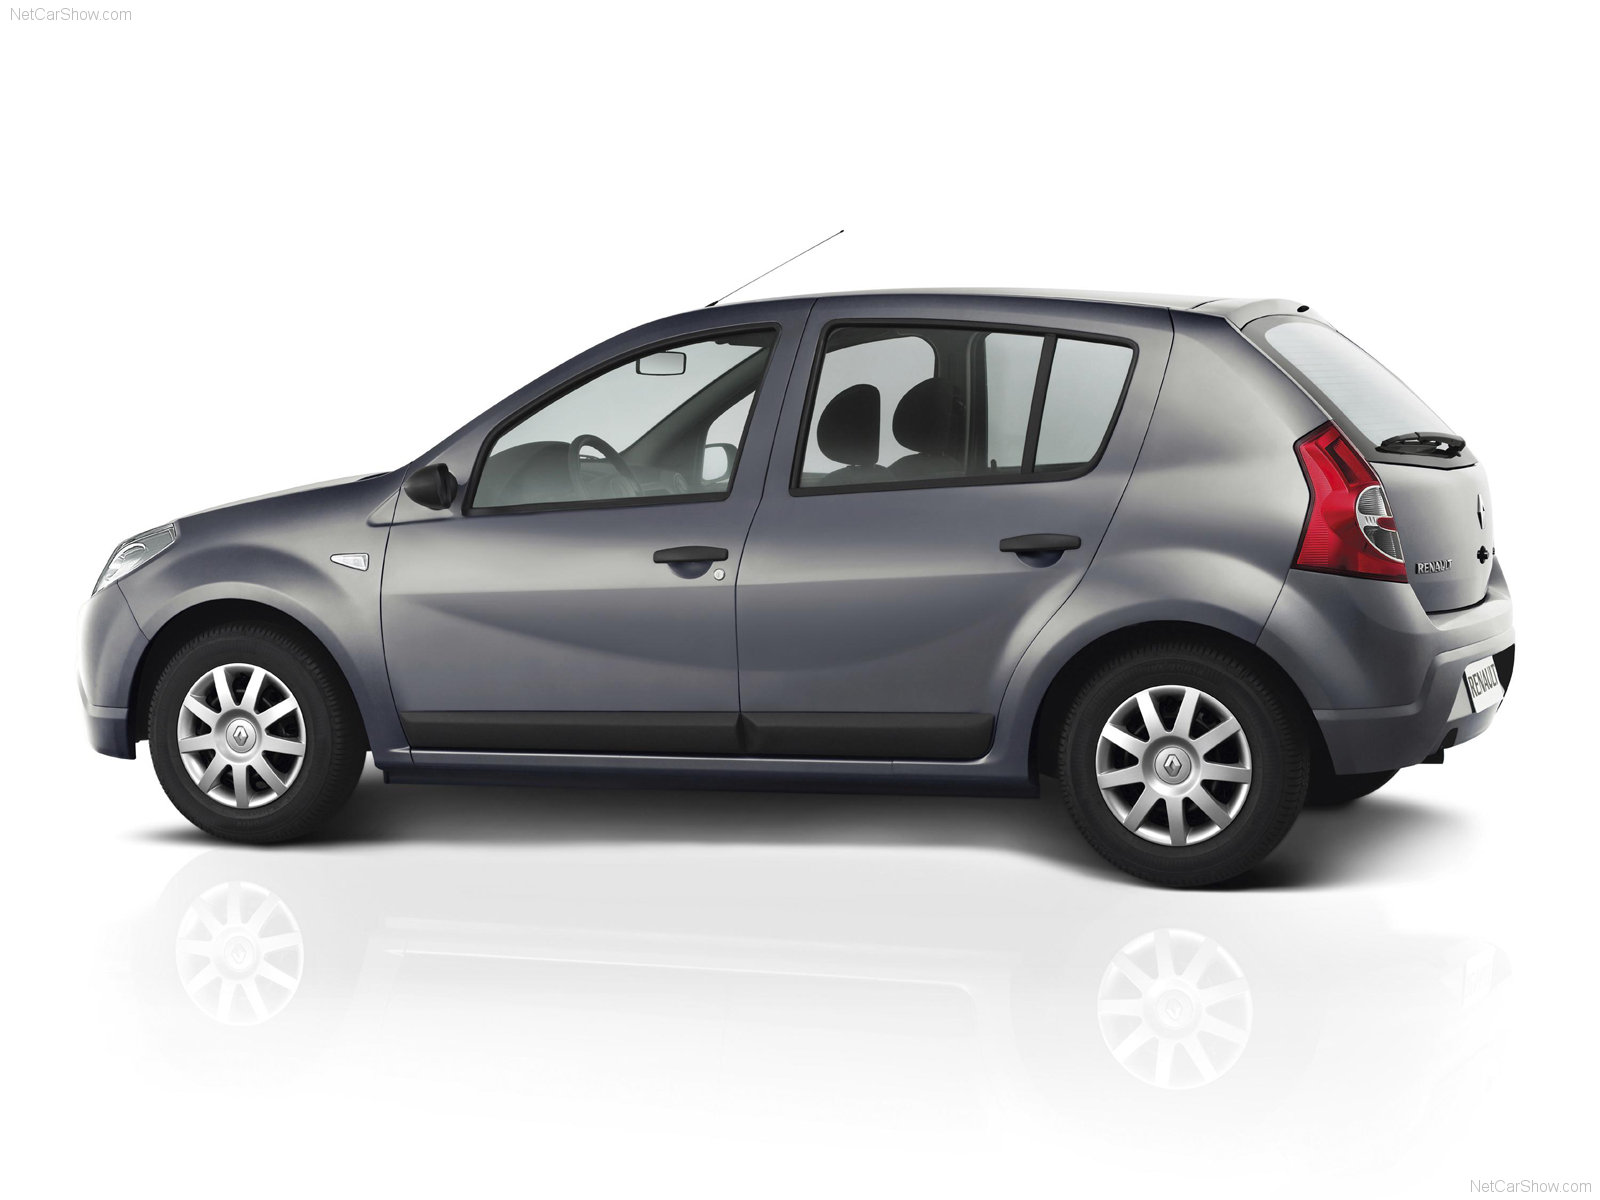 Renault Sandero 5 Door Hatchback 2011